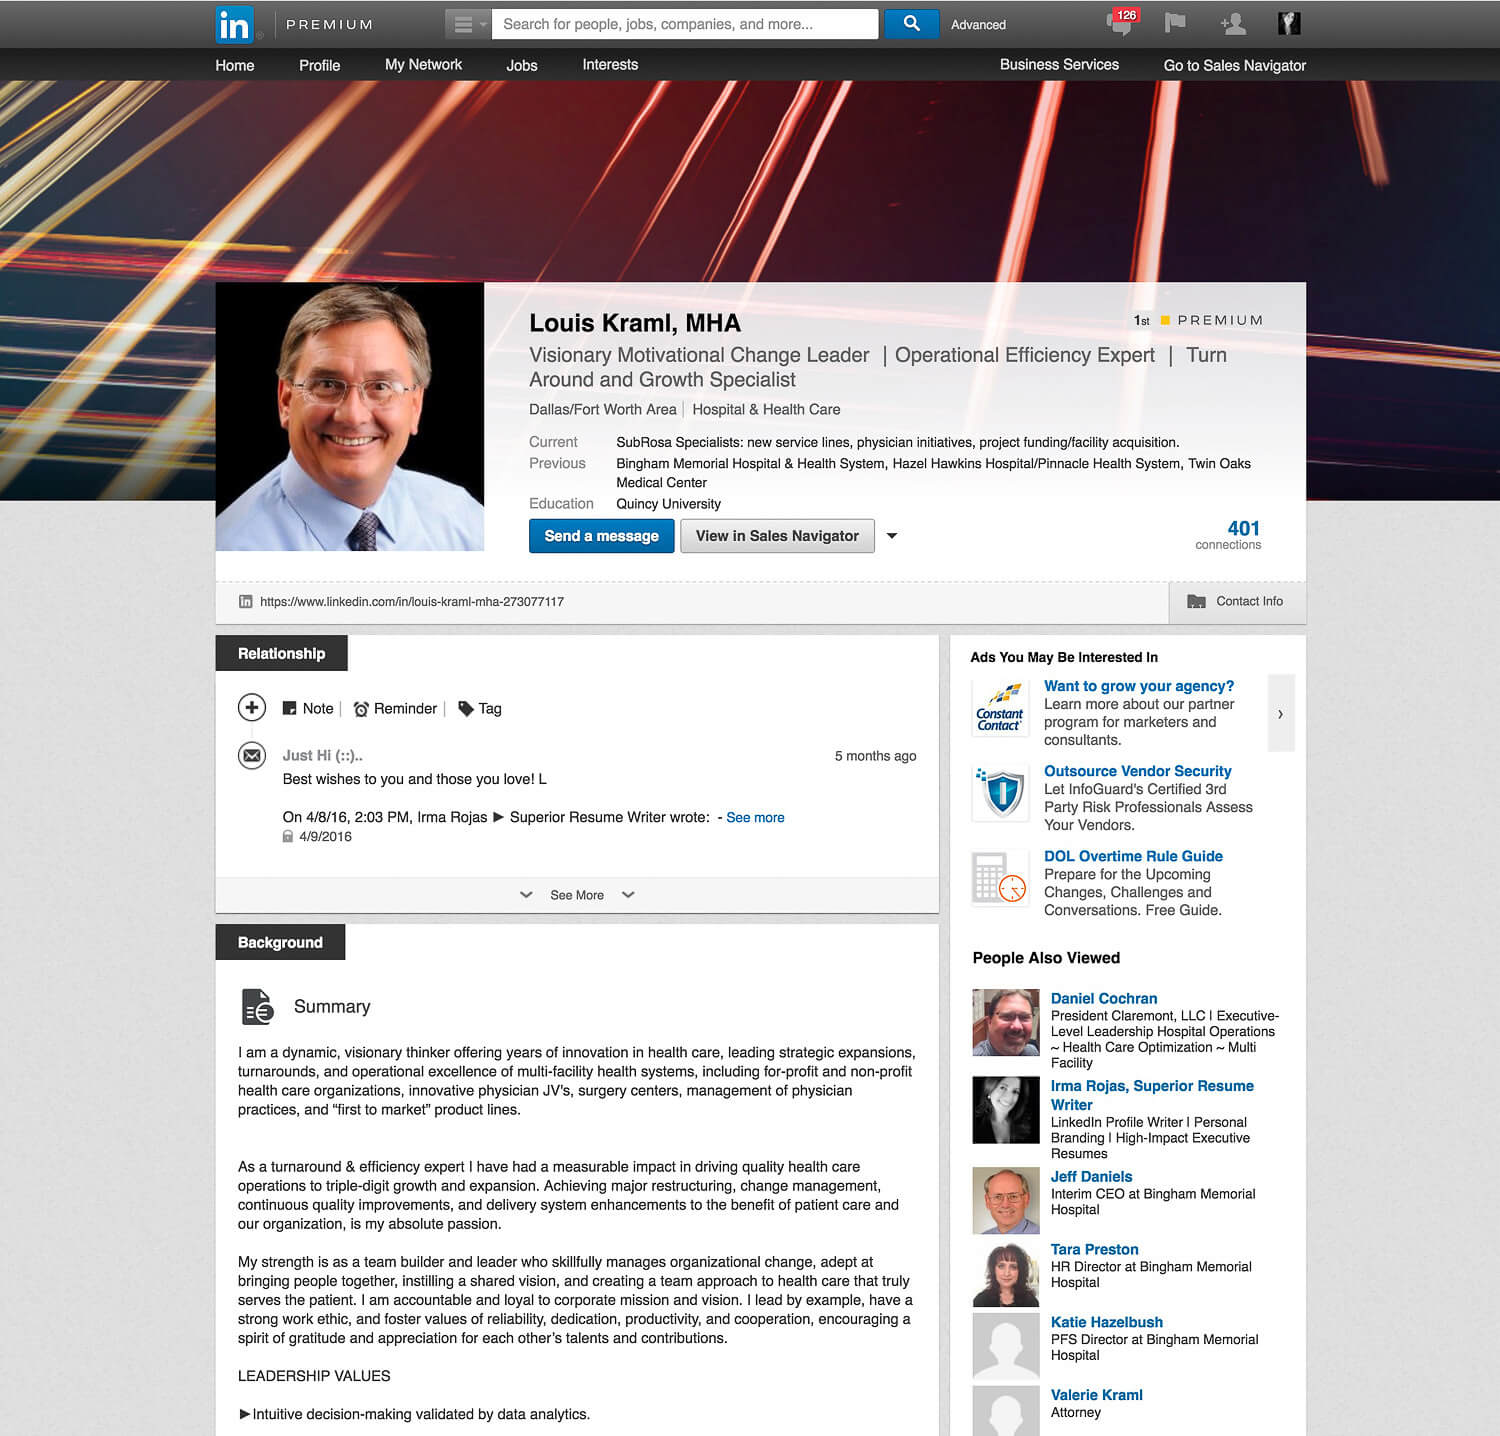 Louis_Kraml__MHA___LinkedIn_and_Adobe_Photoshop_CC_2015_and_SAMPLES_FOR_WEB_SITE_FINAL